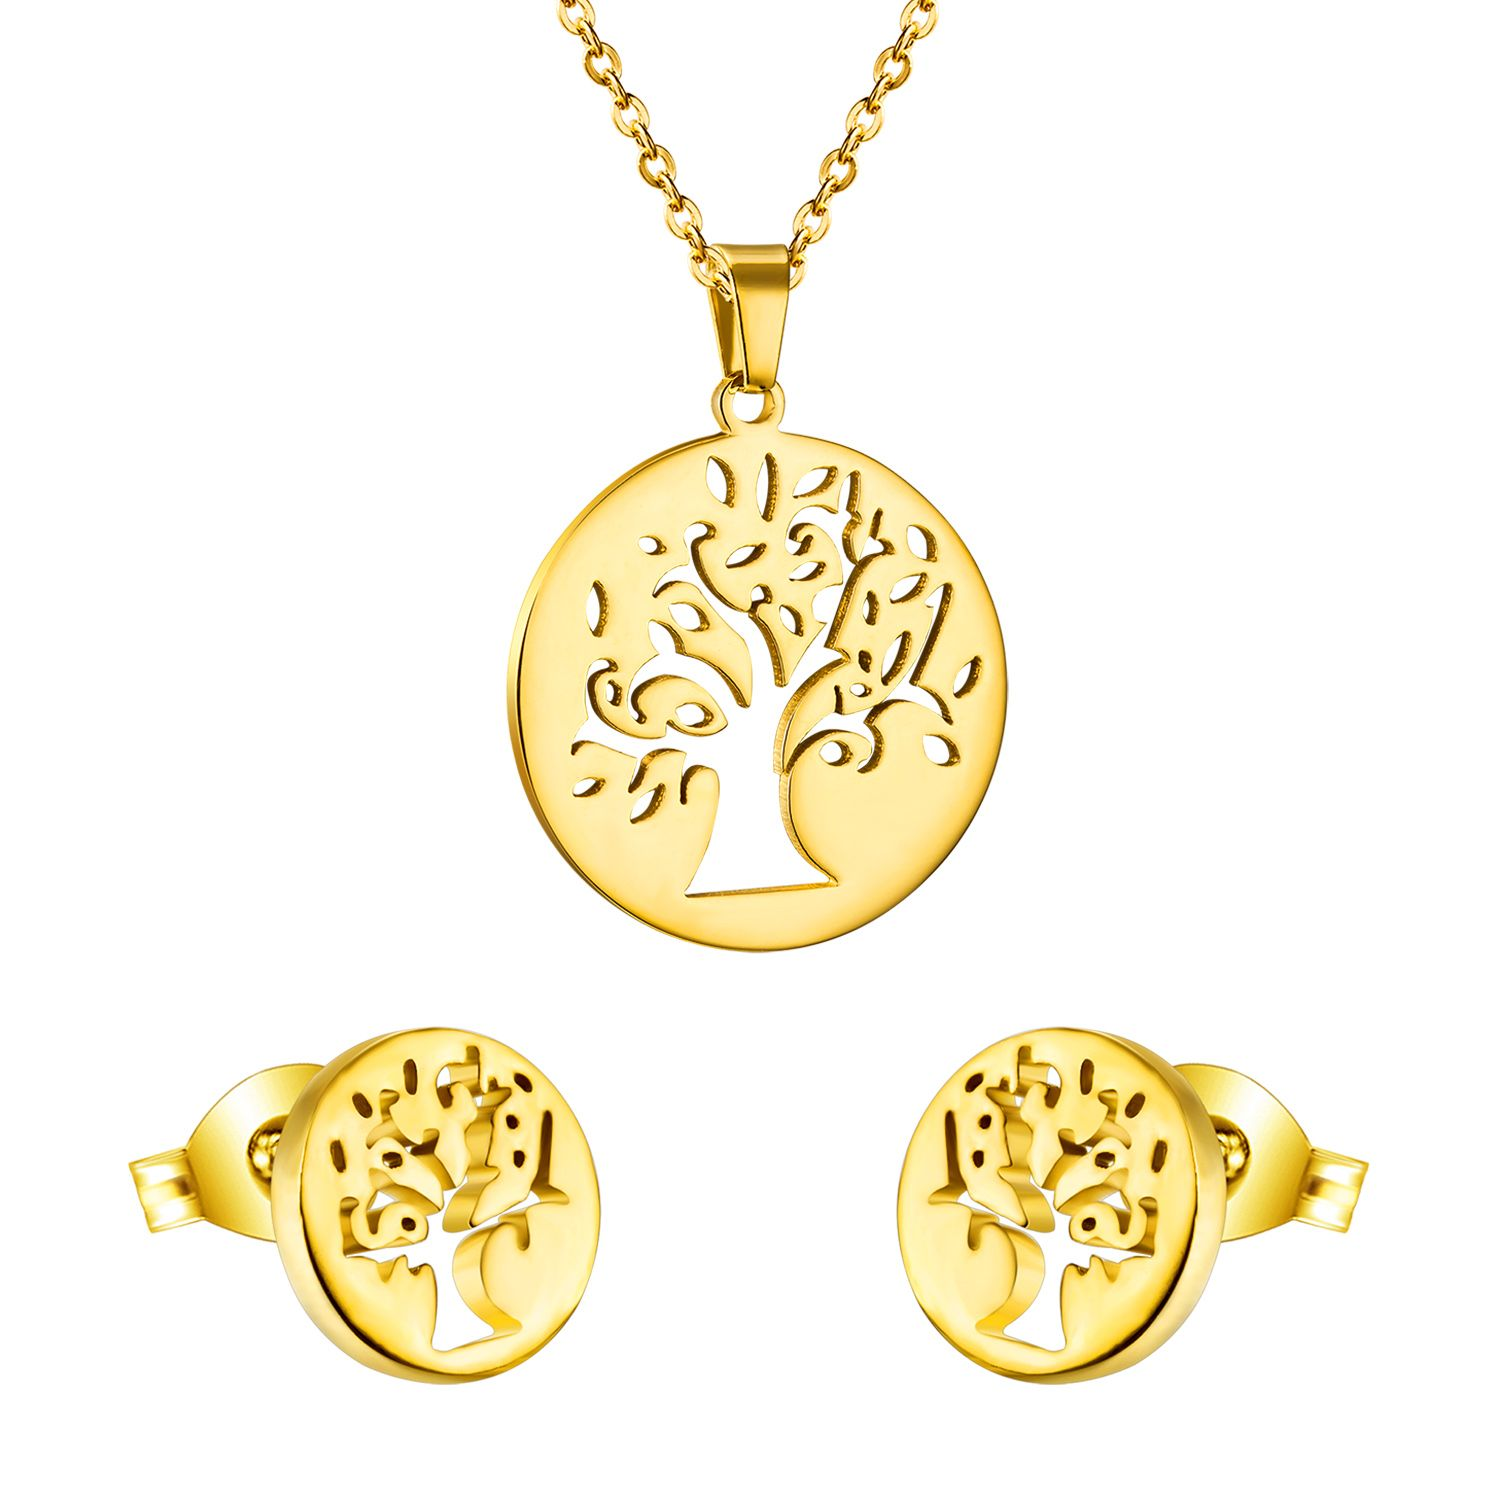 Vitage big tree round cut pendant necklace with earrings women